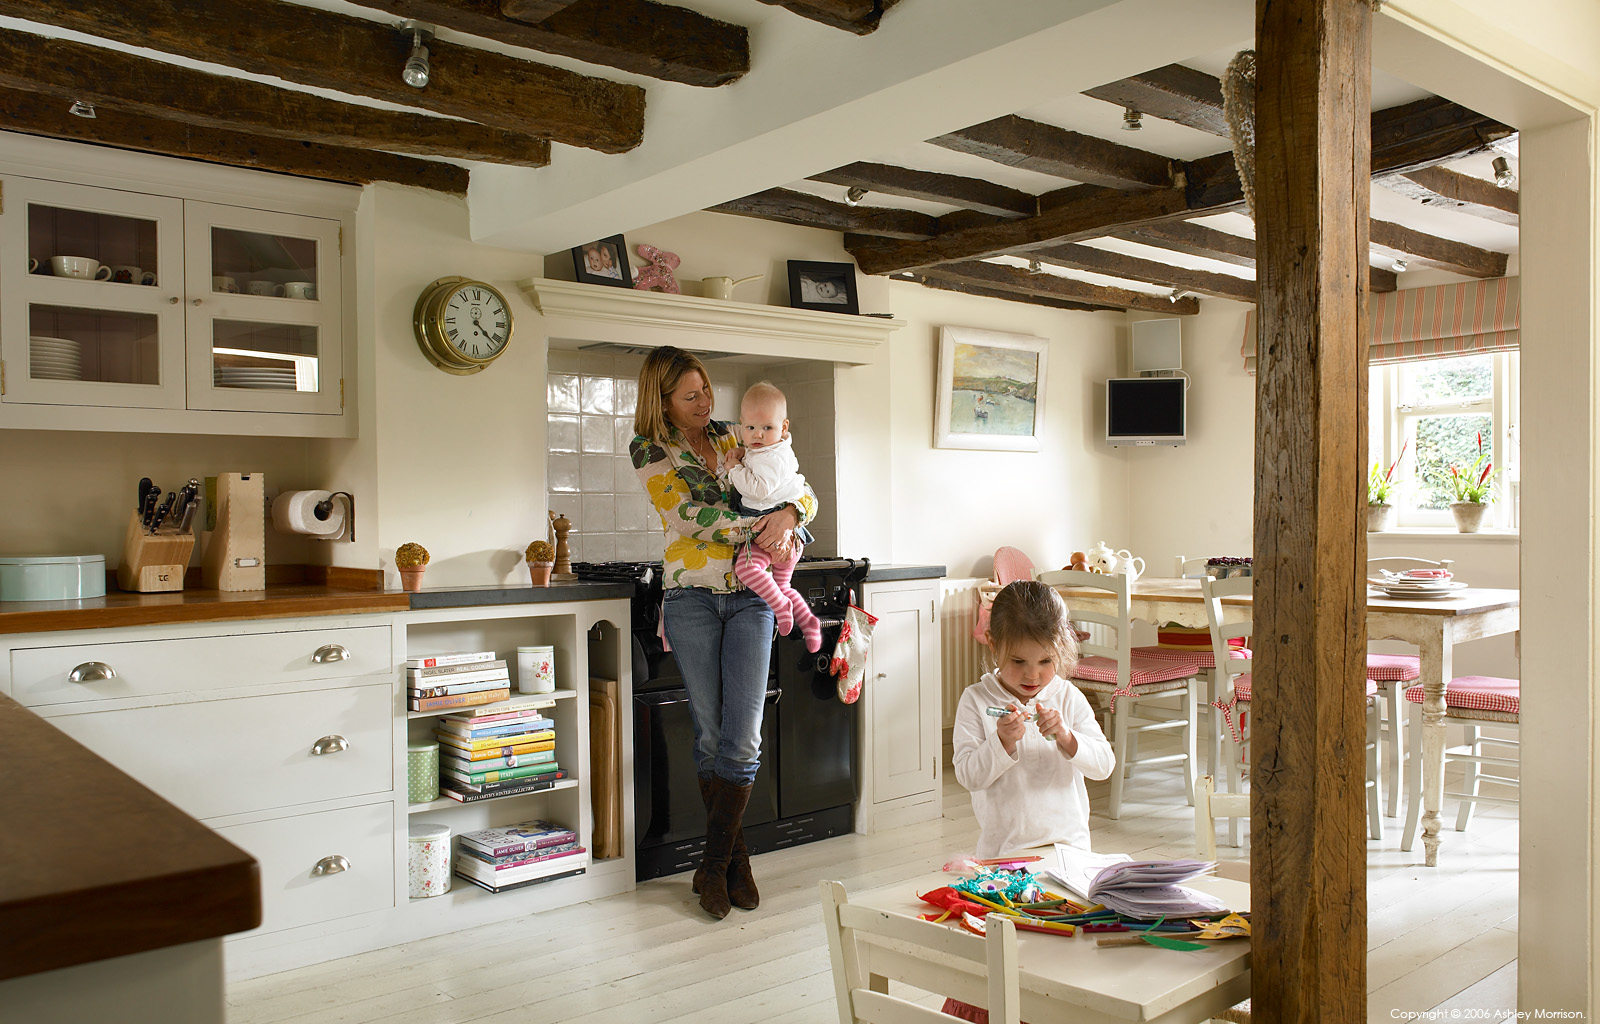 Sarah Bird with her daughters Millie and Darcey in the kitchen of their farmhouse near Shalford in Surrey by Ashley Morrison.